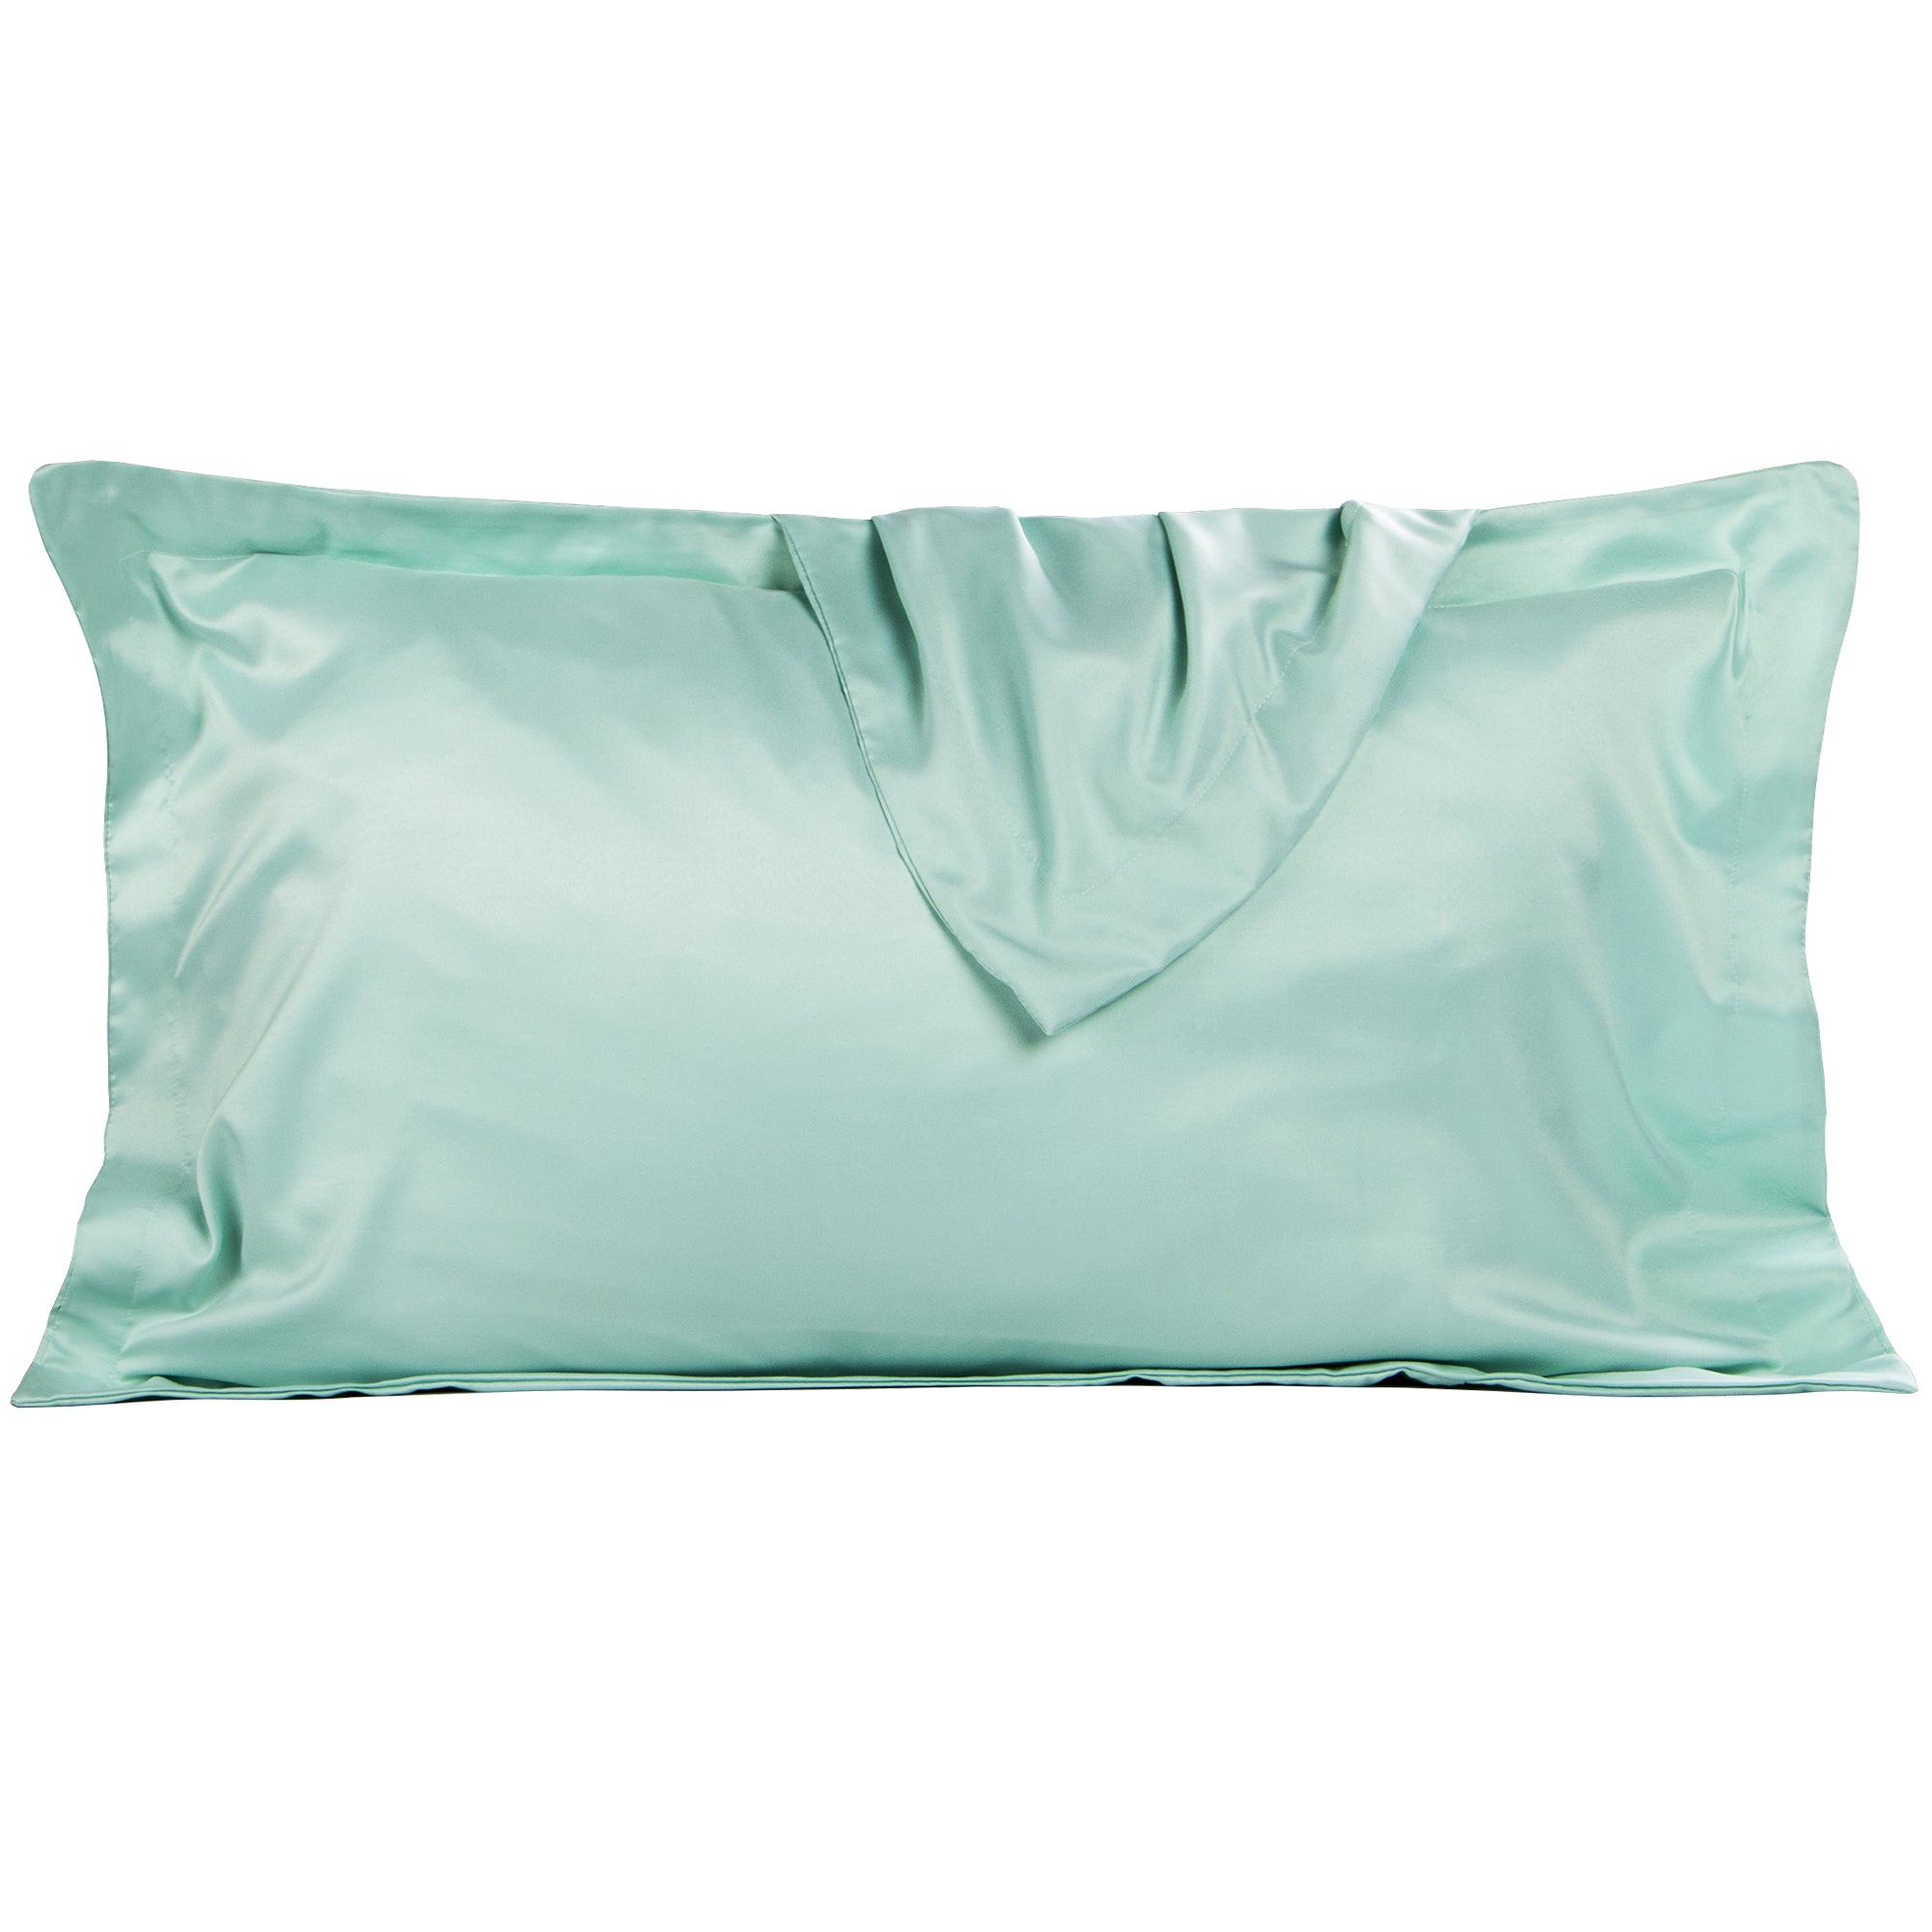 NTBAY Silky Satin Pillow Shams Set of 2 - NTBAY